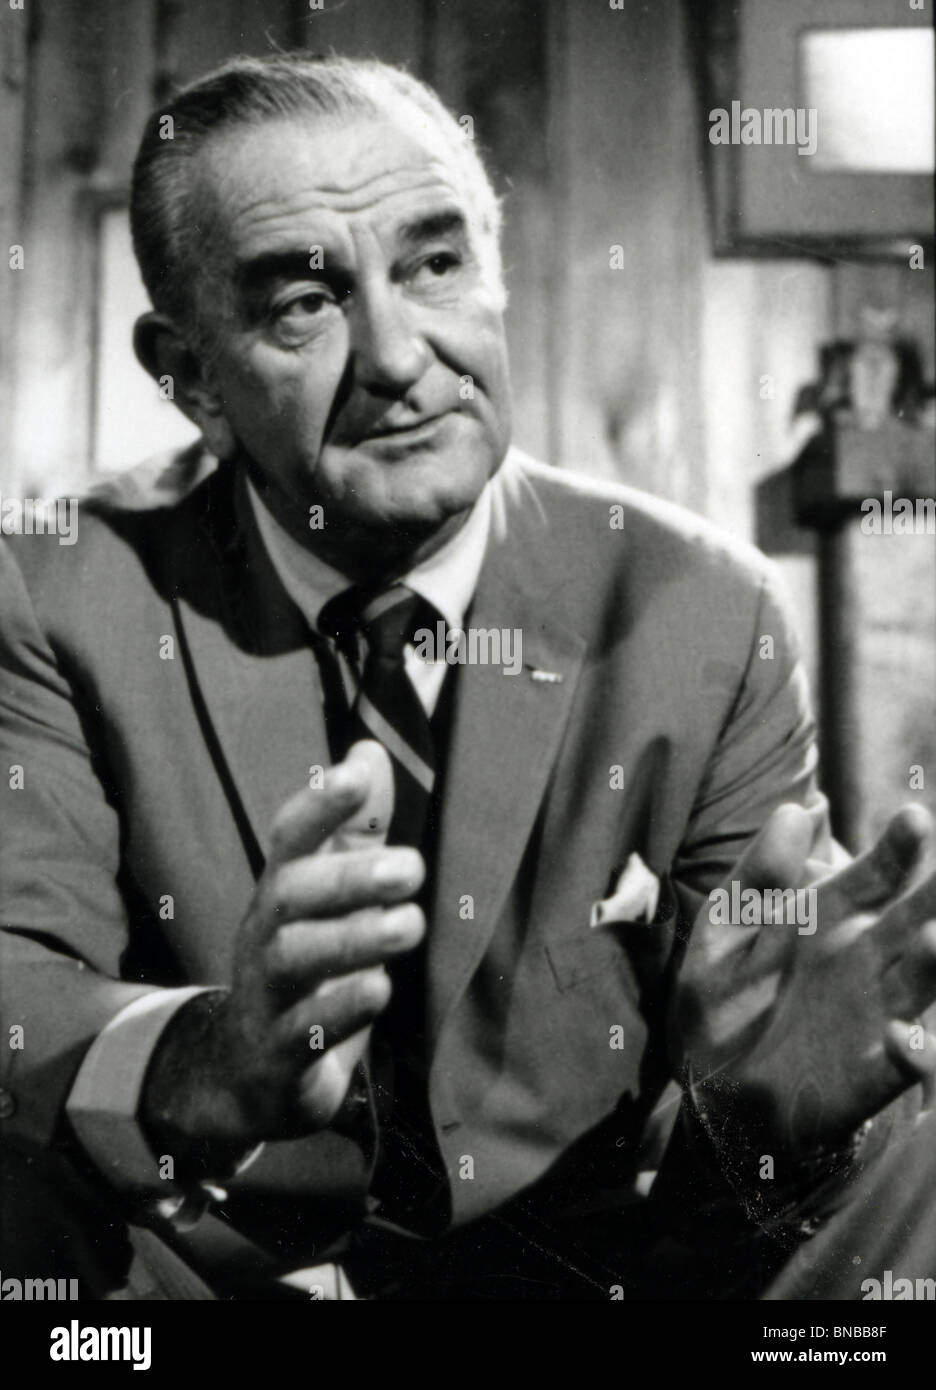 how significant was lyndon b johnson in In the case of us president lyndon johnson, the difference reveals both his genius and his shortcomings and few leaders have done both so well as the 36th president of the united states, lyndon baines johnson for most of his career, johnson was an archetypical politician, trading.